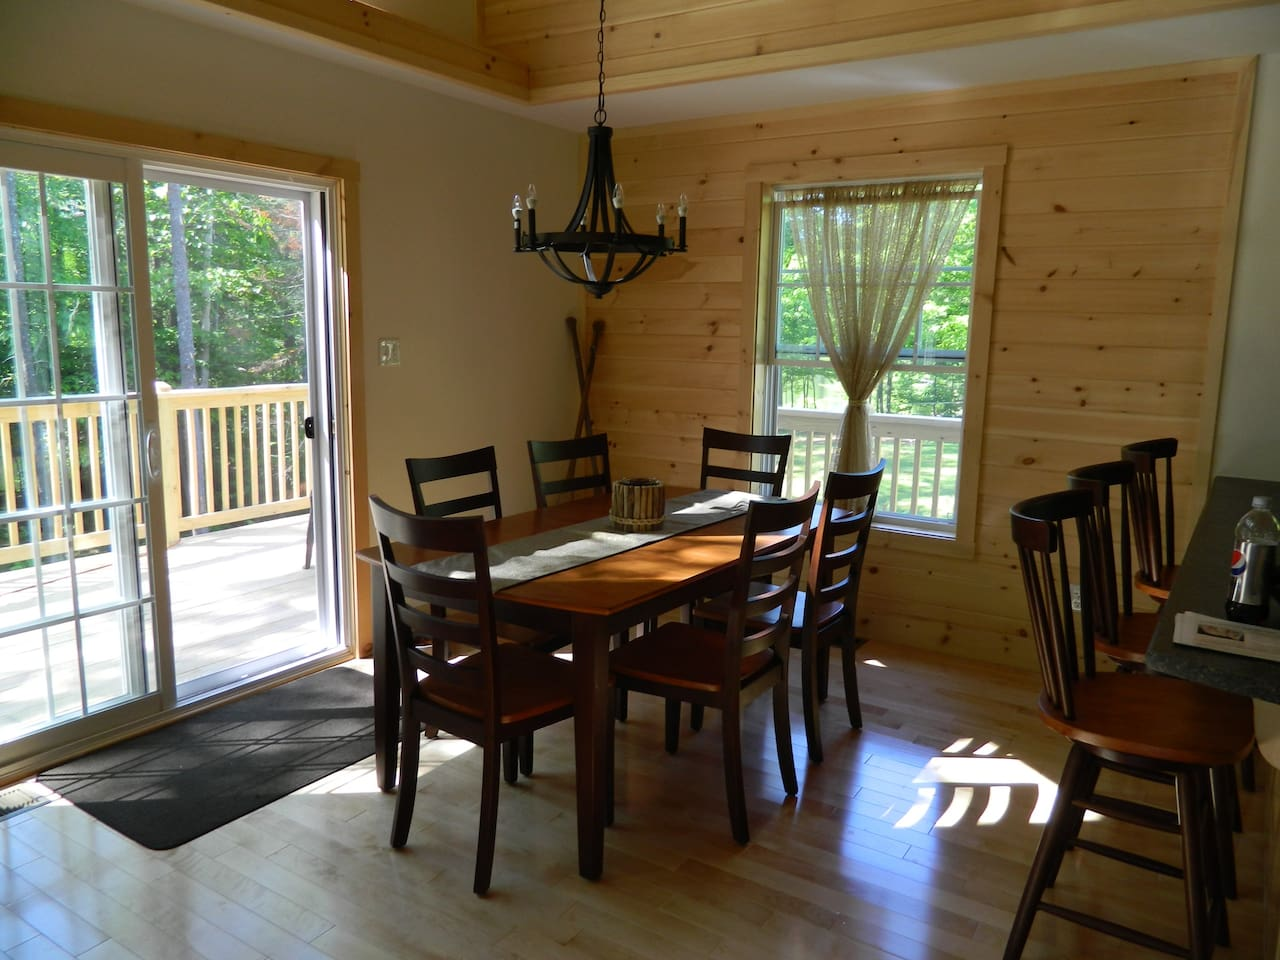 Waterfront Chalet Naples Maine - Chalets for Rent in Naples, Maine ...